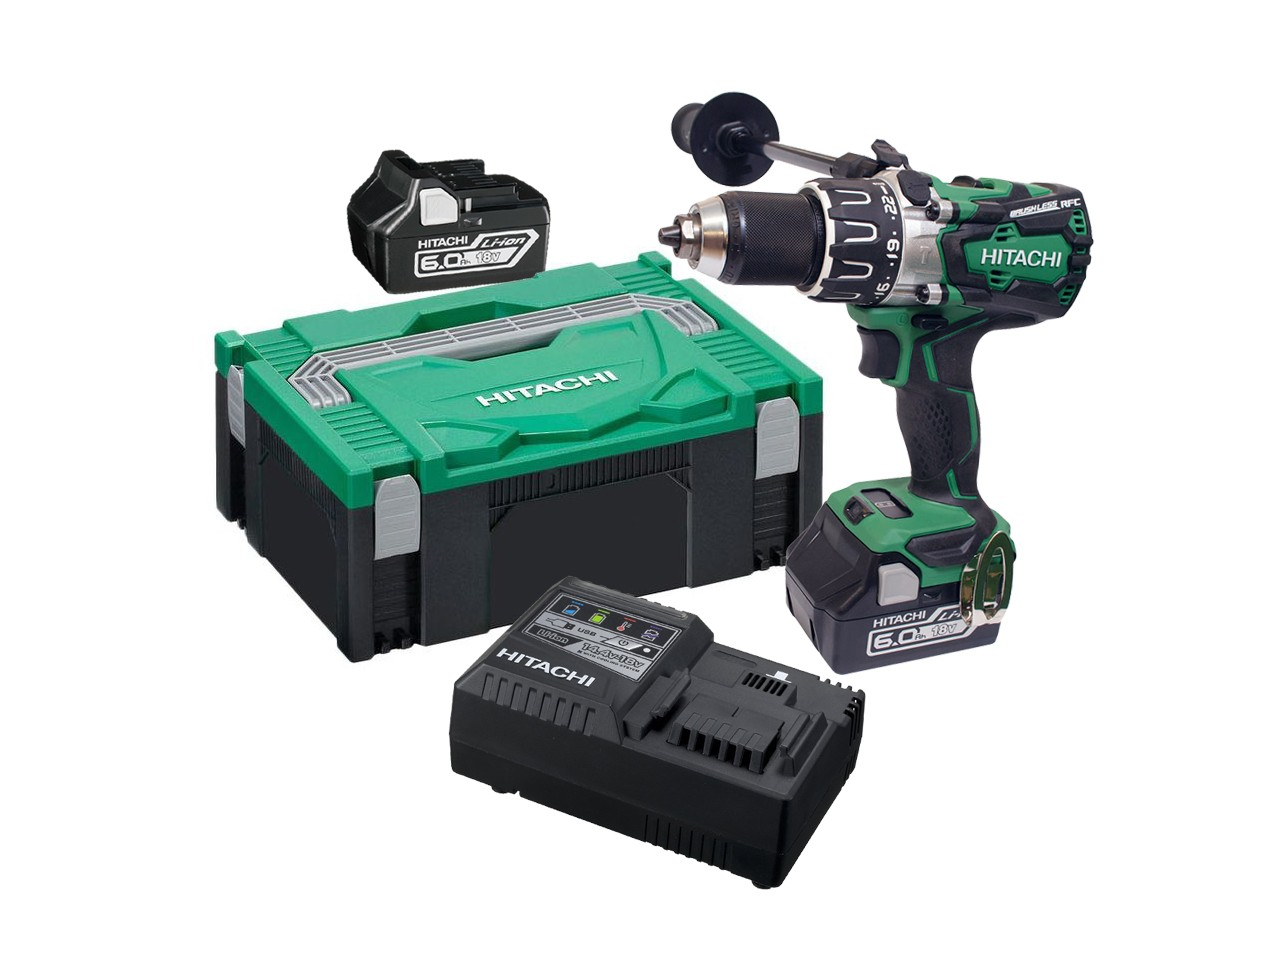 Hitachi DV18DBXL/JX 18v Brushless Combi Drill inc 2x 6.0Ah Batts